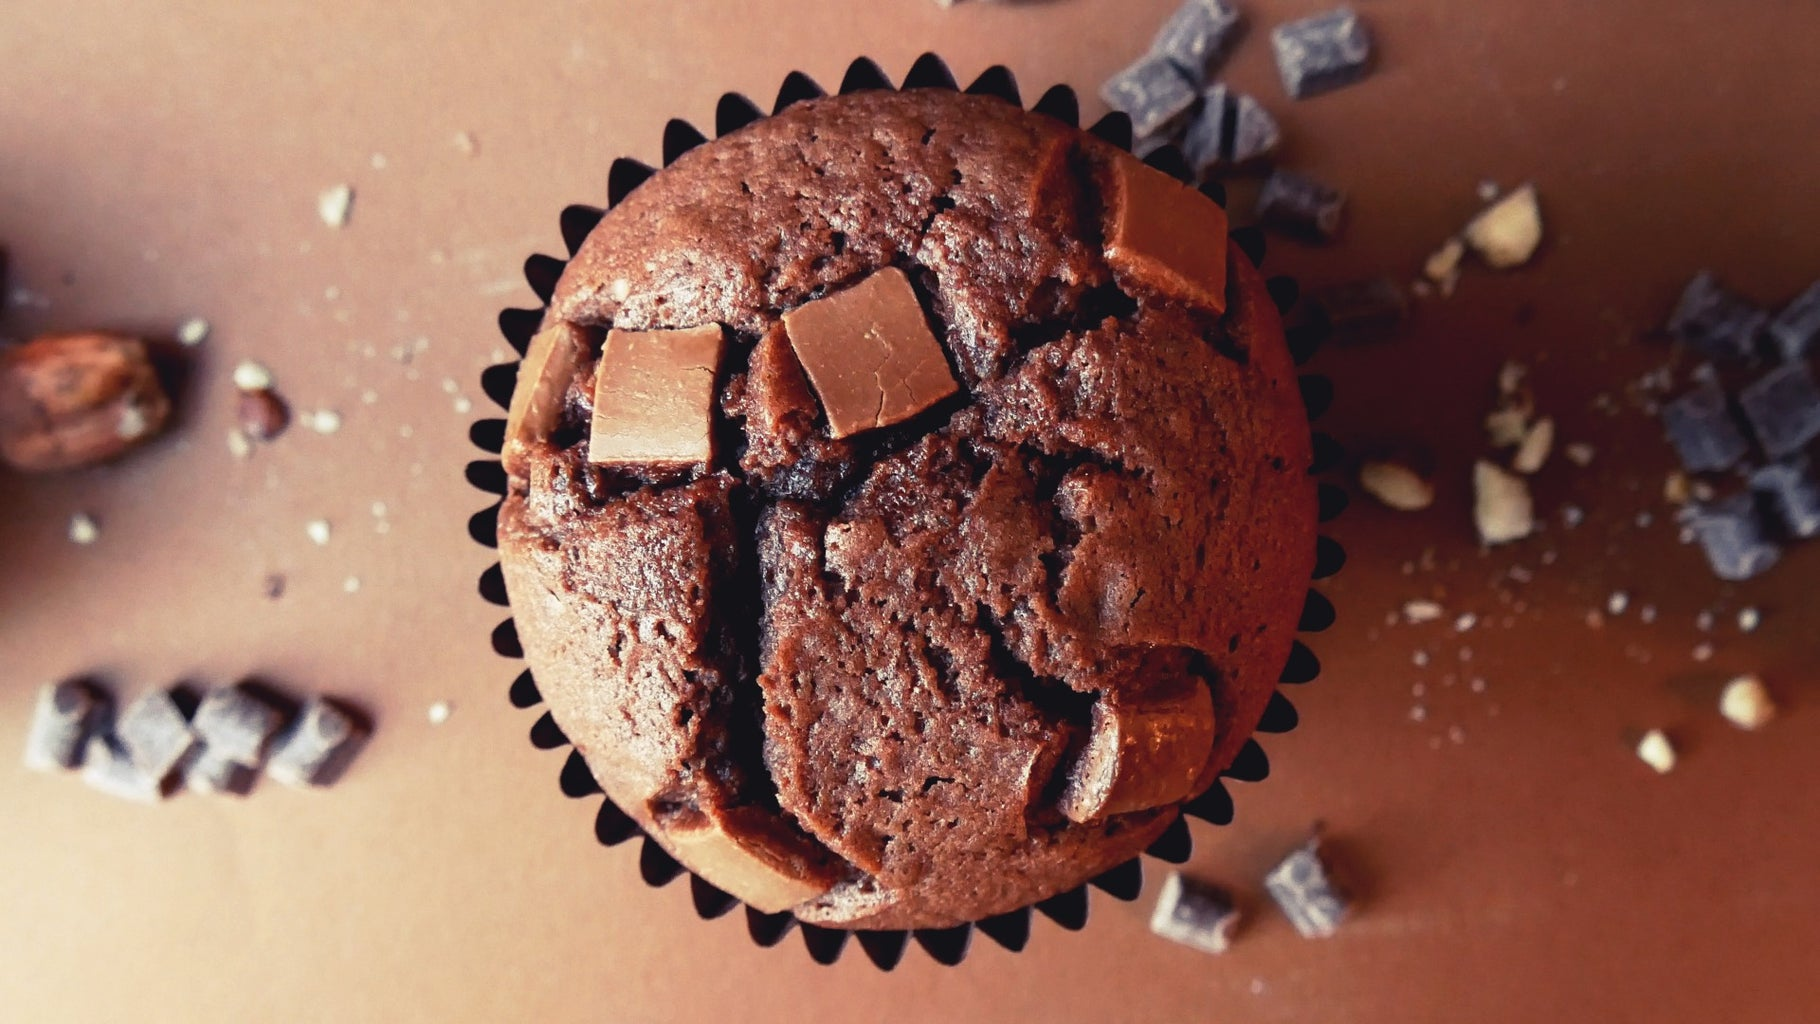 Nutella Chocolate Chip Muffins With a Nutella Truffle Centre